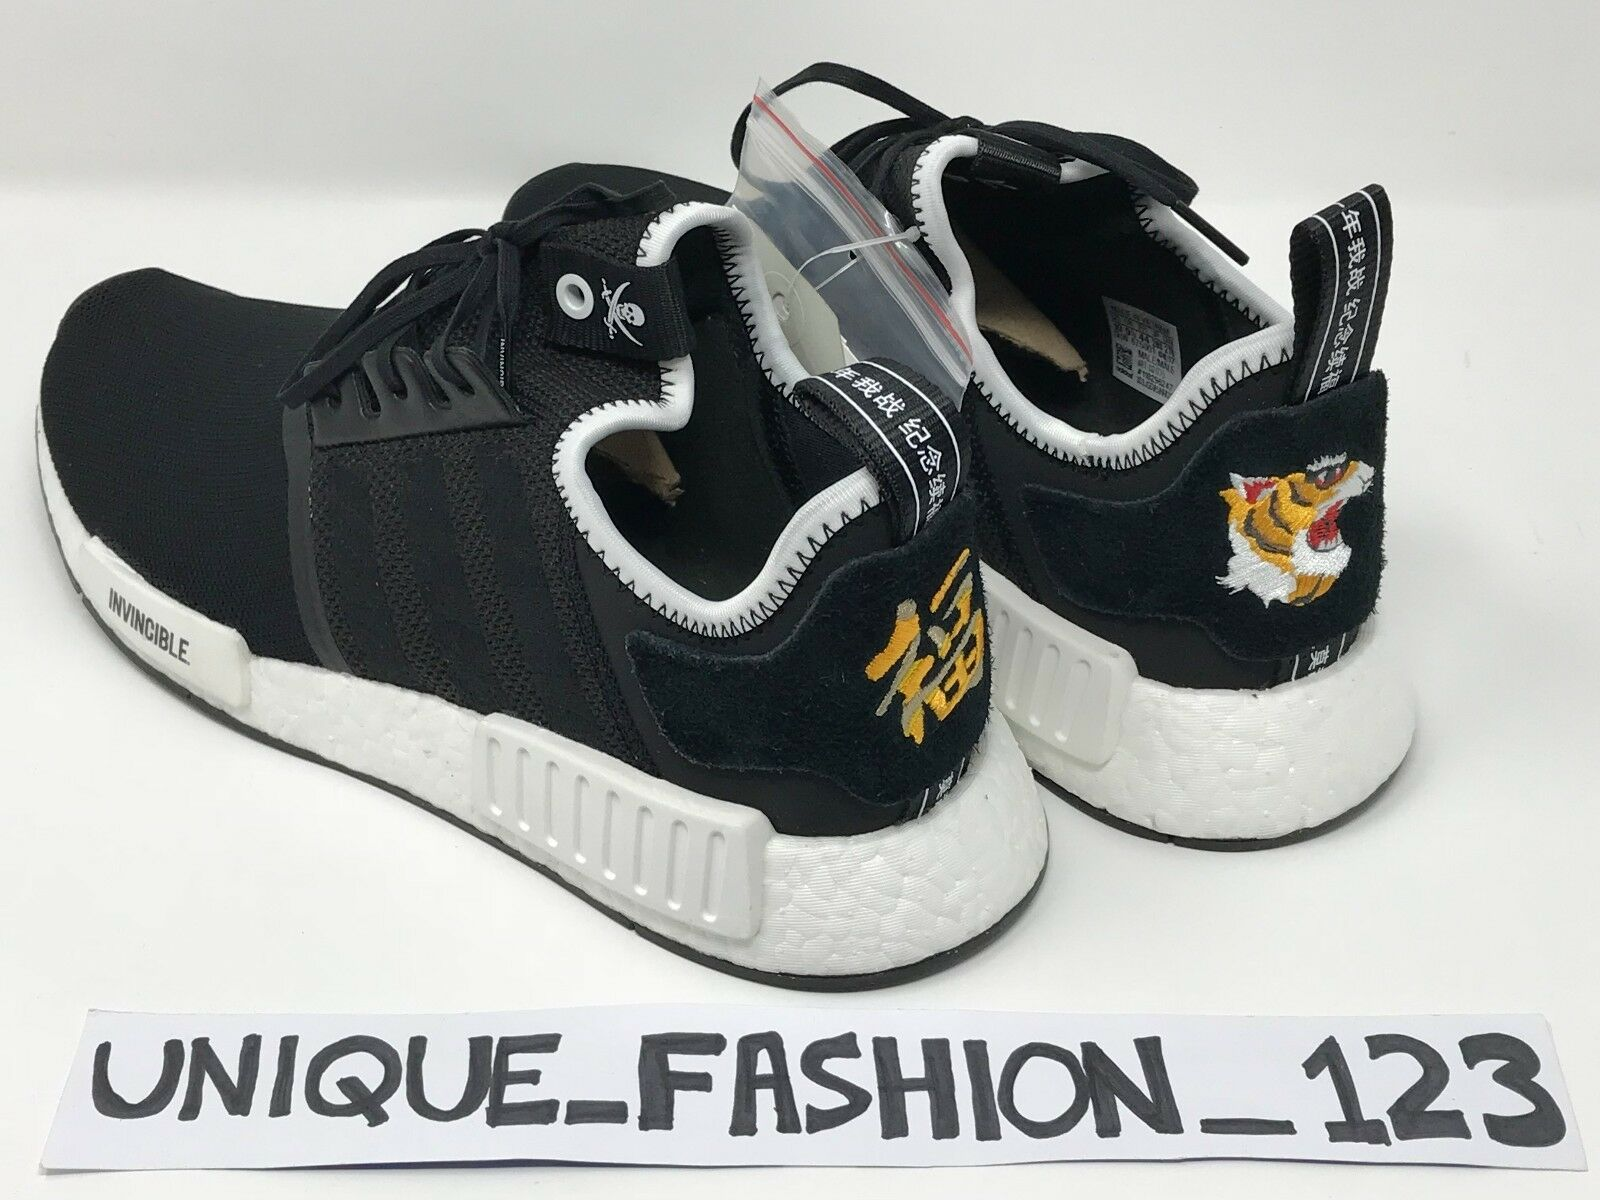 the latest 3f3a8 06472 ADIDAS CONSORTIUM NEIGHBORHOOD X INVINCIBLE NMD R1 UK 6 7 8 9 10 11 12 13  BLACK